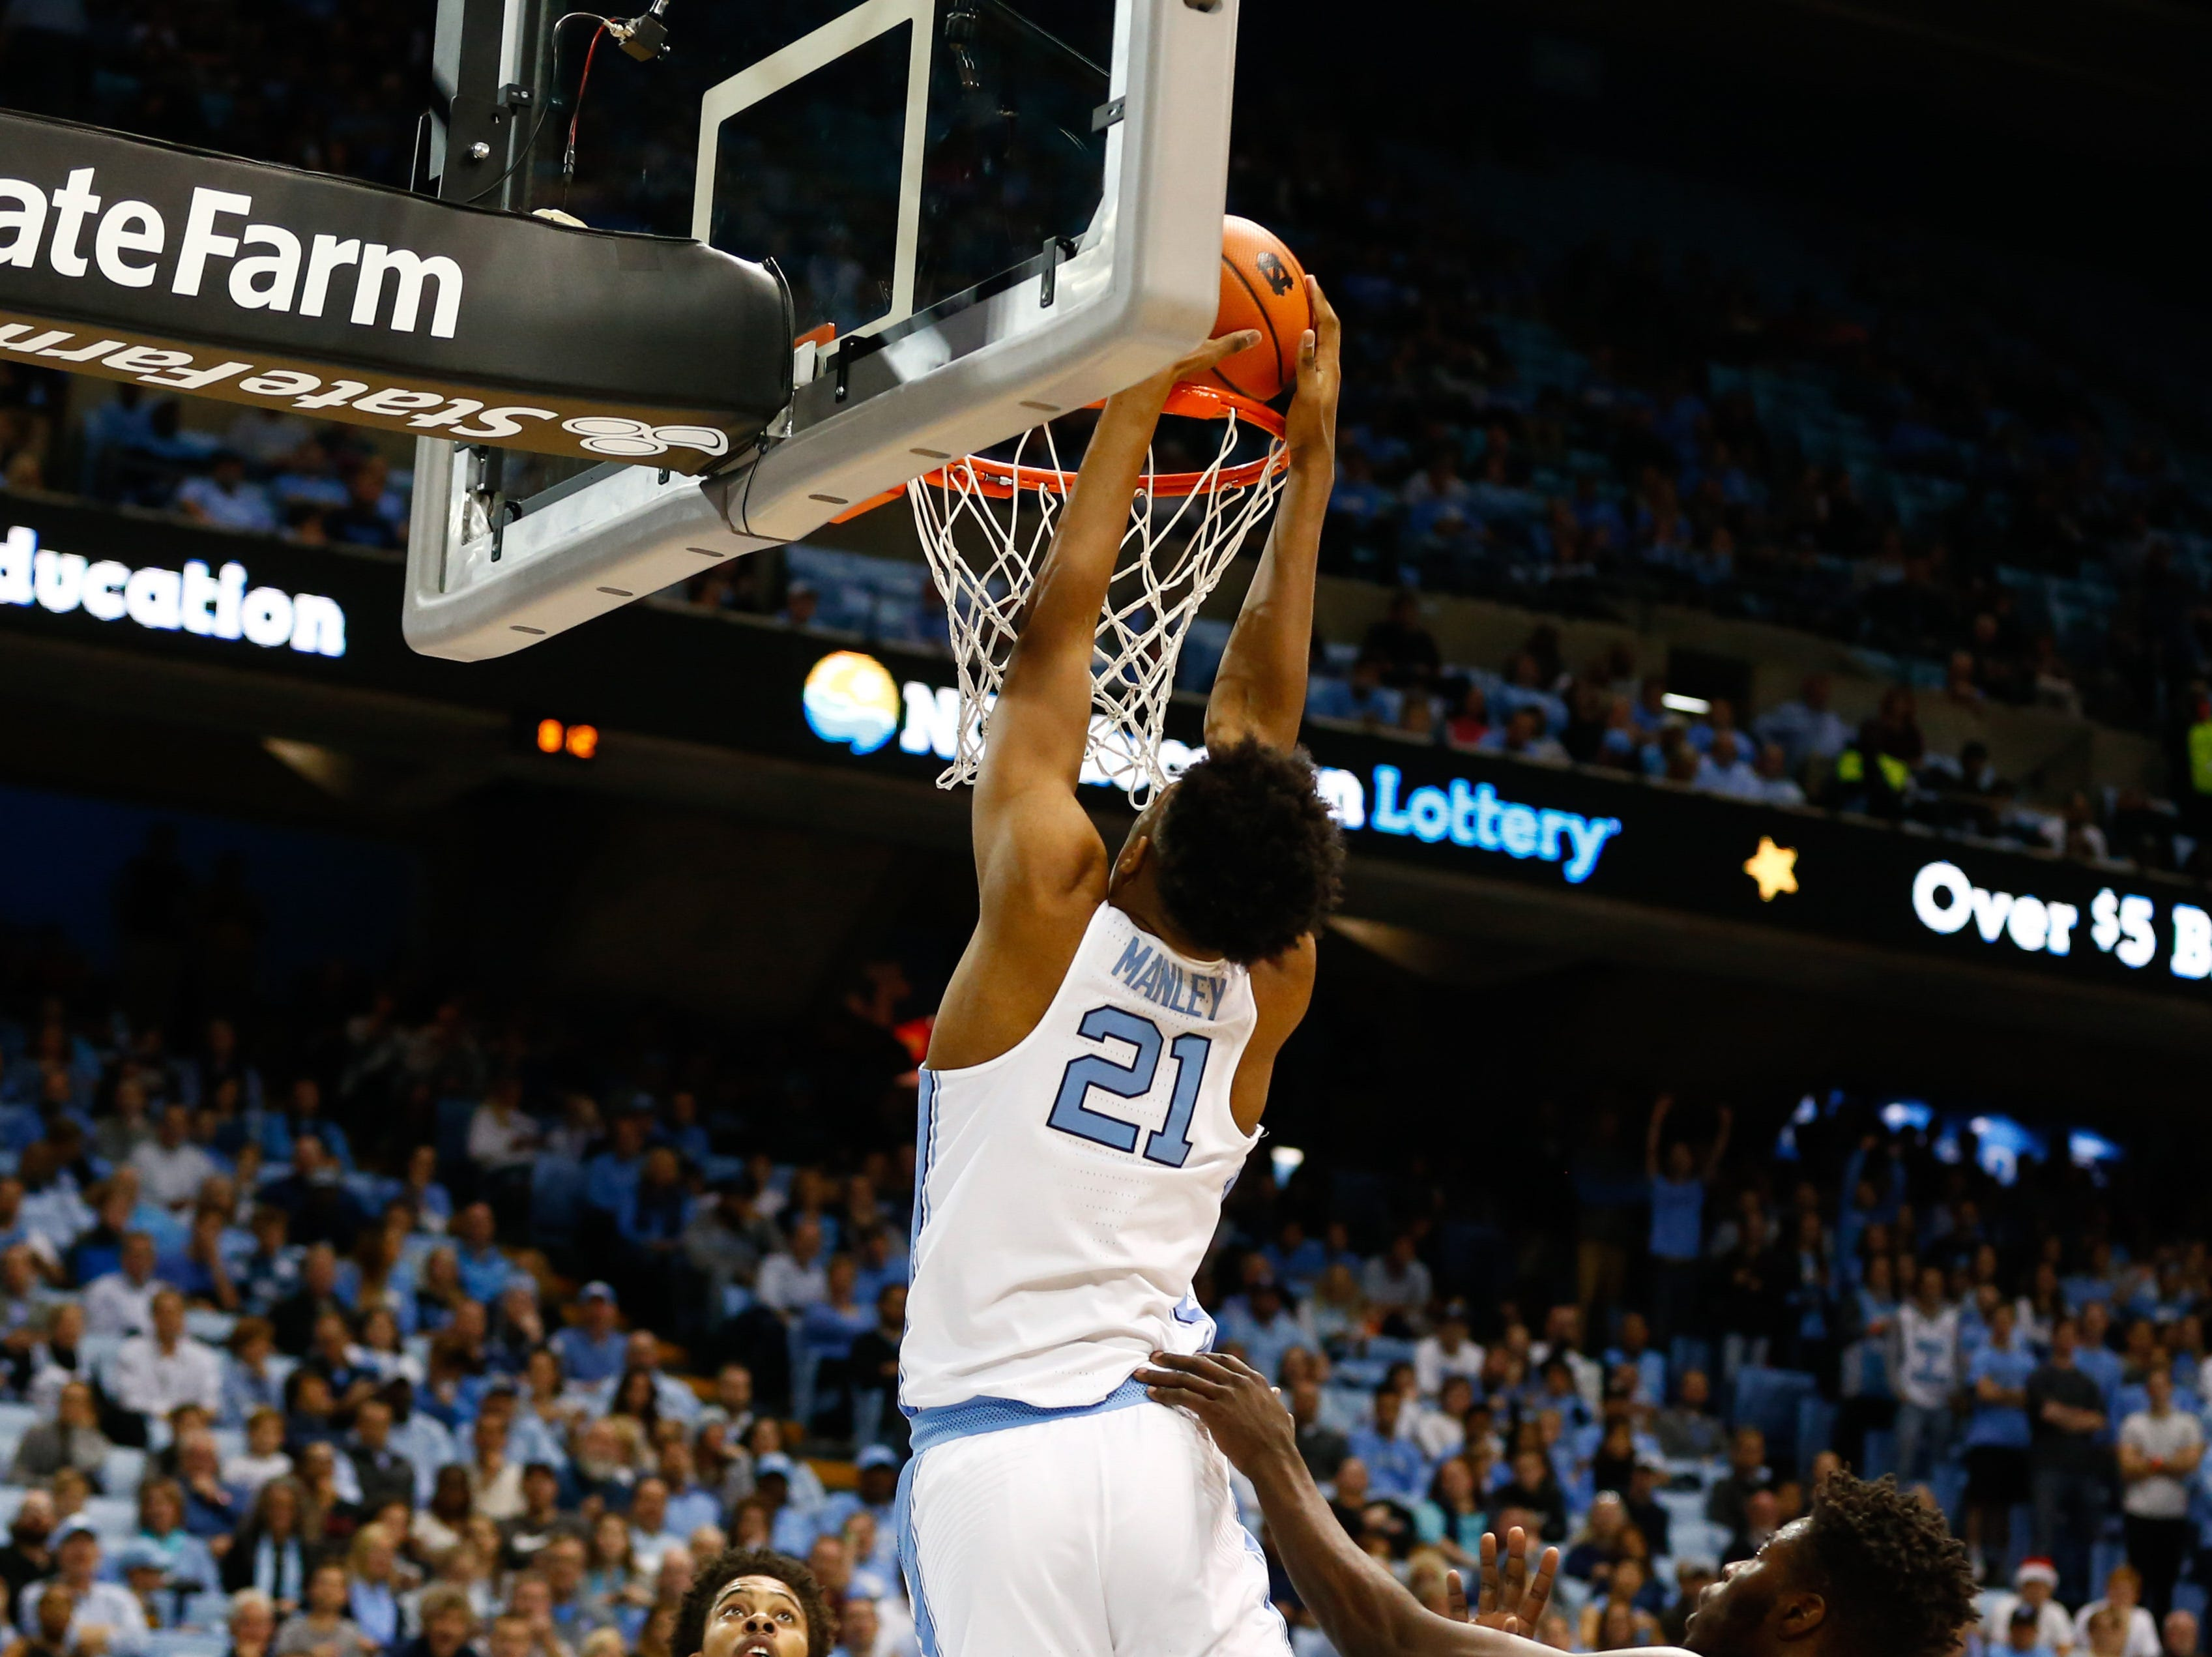 Dec 6, 2017; Chapel Hill, NC, USA; North Carolina Tar Heels forward Sterling Manley (21) dunks the ball in the second half against the Western Carolina Catamounts at Dean E. Smith Center. Mandatory Credit: Jeremy Brevard-USA TODAY Sports